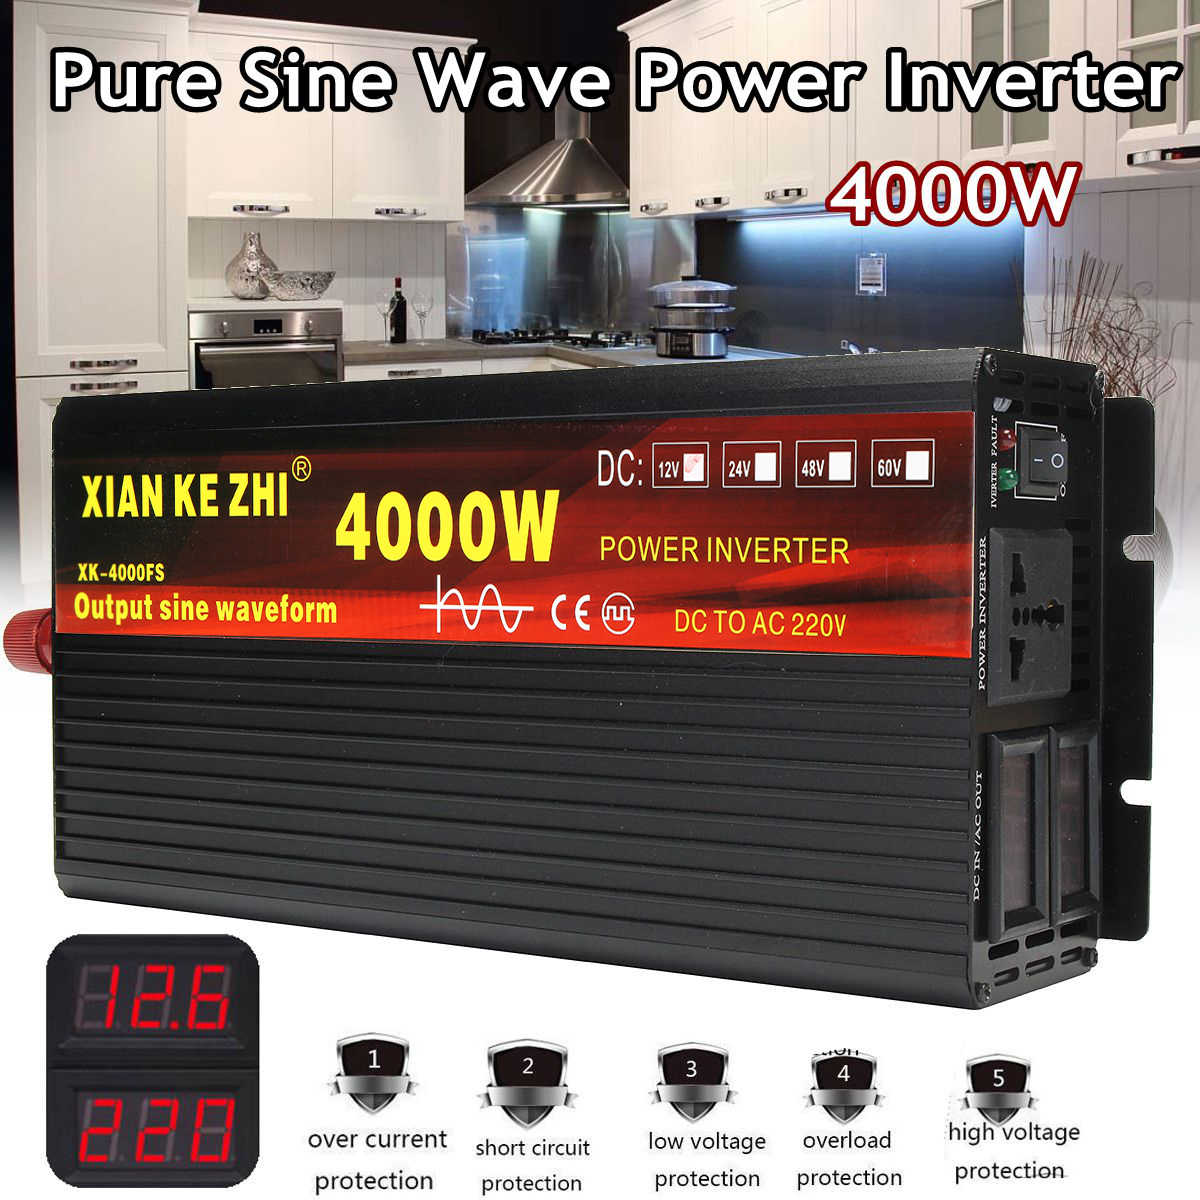 Inverter 12 V/24 V 220V 2000/3000/4000W Transformator Gelombang Sinus Murni inverter DC12V untuk AC 220V CONVERTER + 2 LED Display